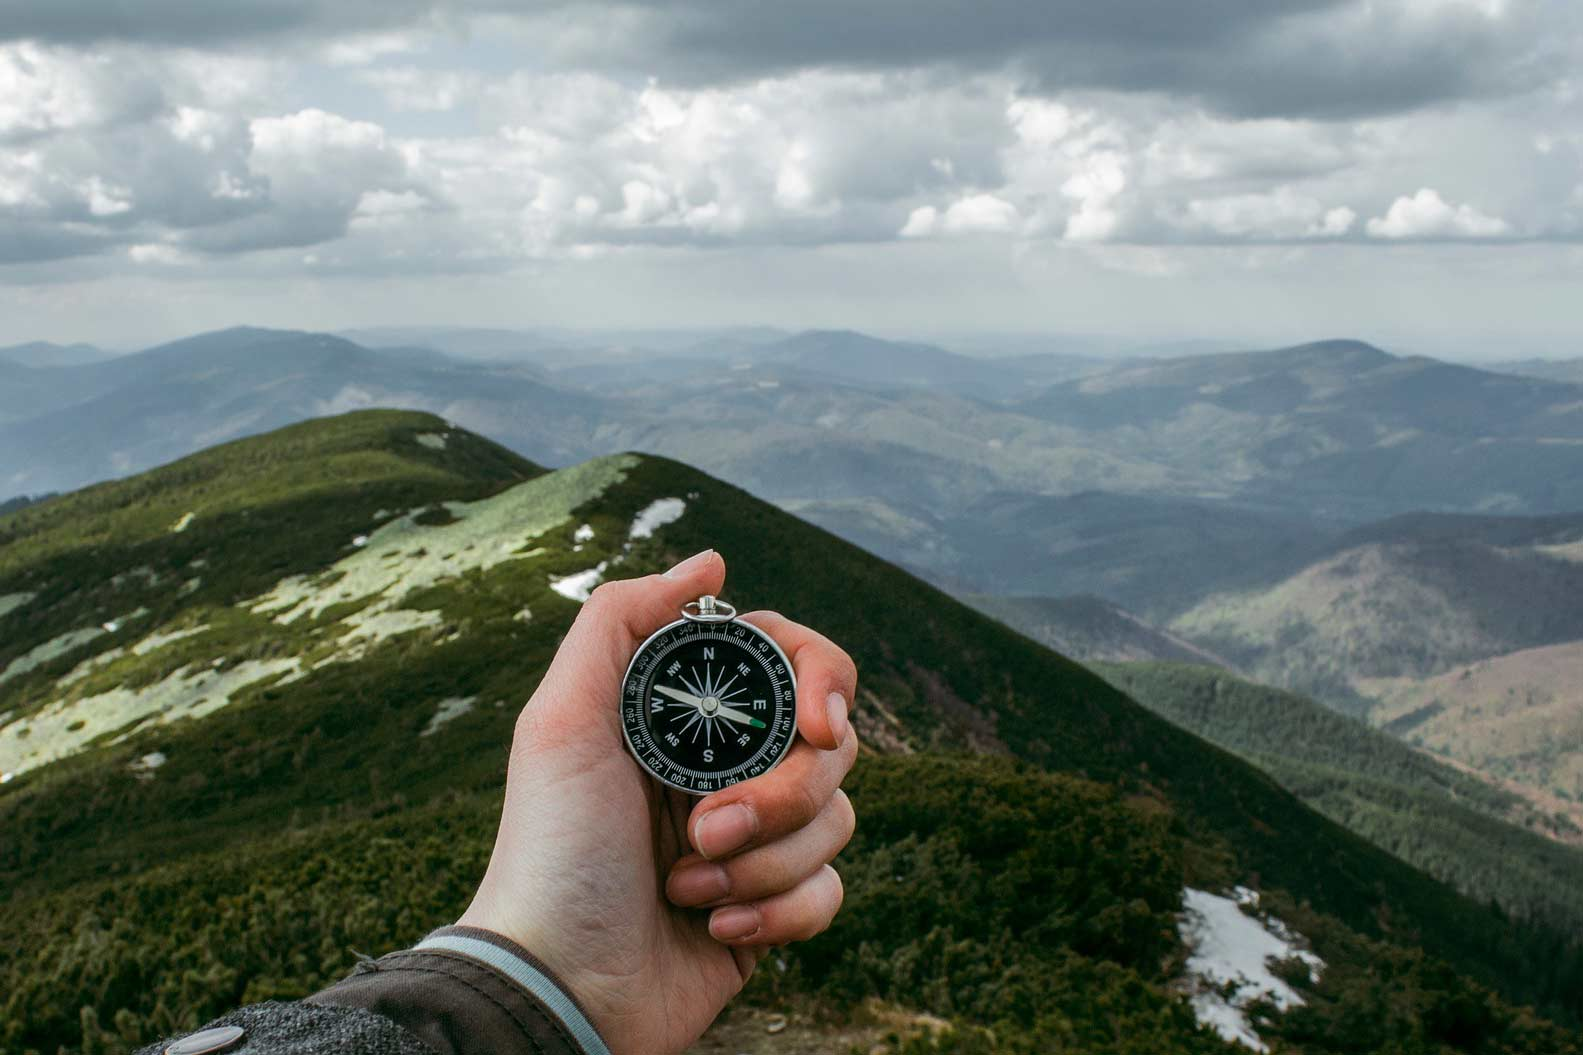 Hand holding a compass over a mountainous landscape.